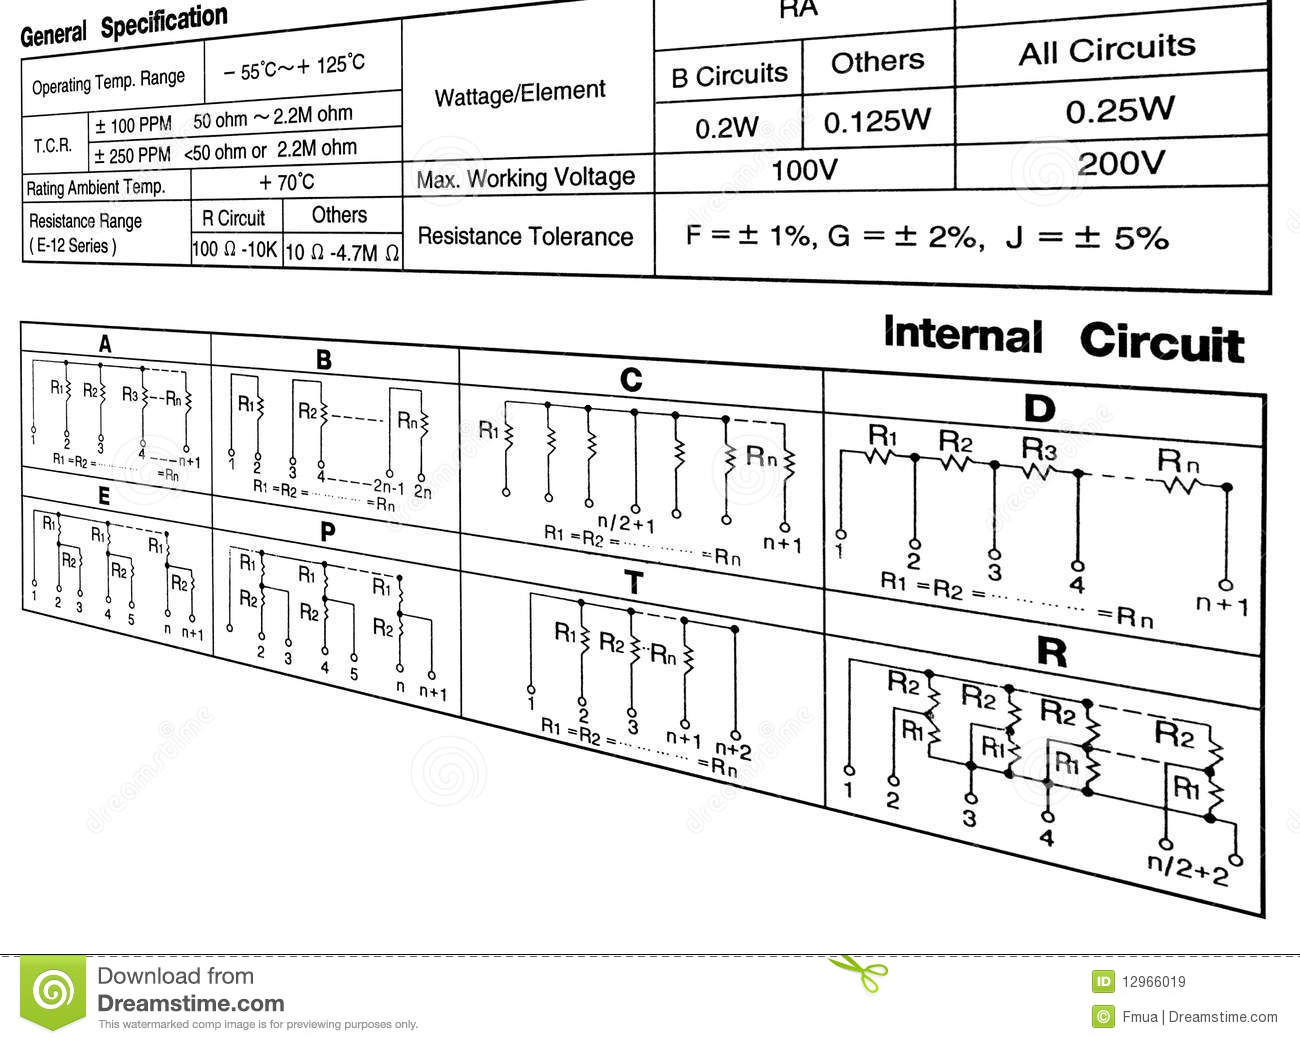 Circuit Specification Concept On White Stock Illustration